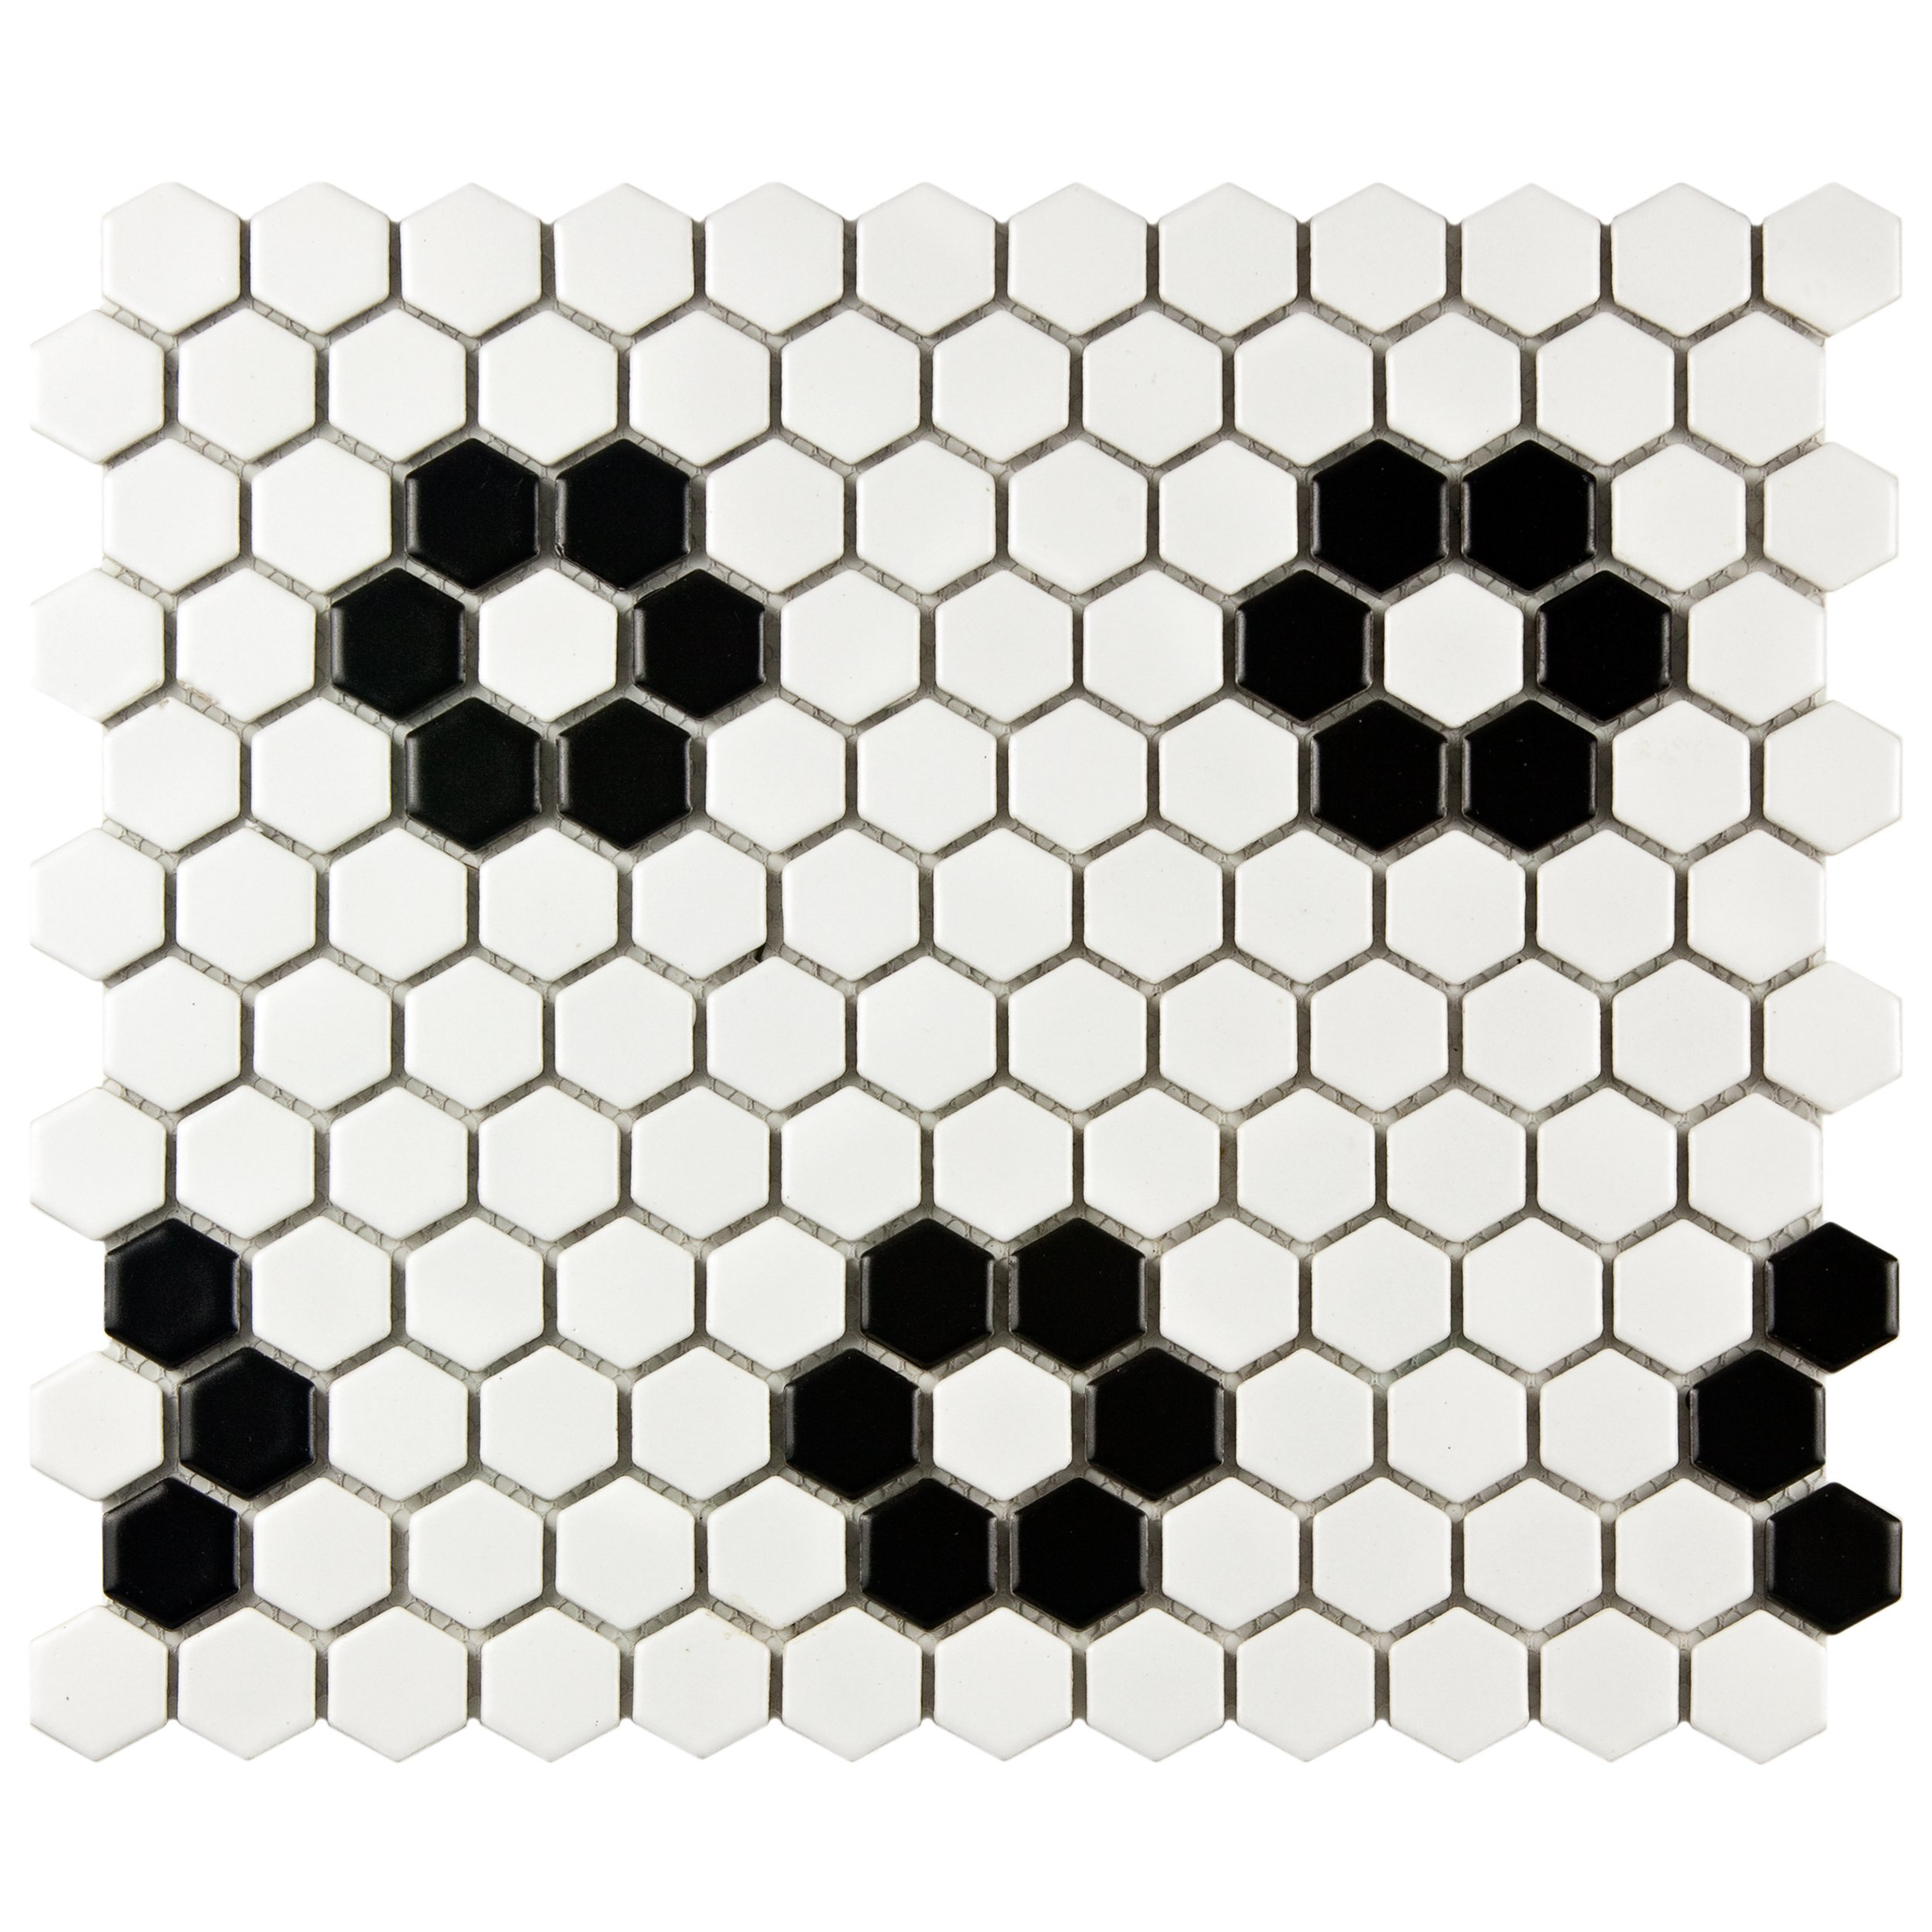 SomerTile FDXMHMWF Metro Hex Matte  White w/Flower  Porcelain Mosaic Tile, 10.25'' x 11.75'', Matte White by SOMERTILE